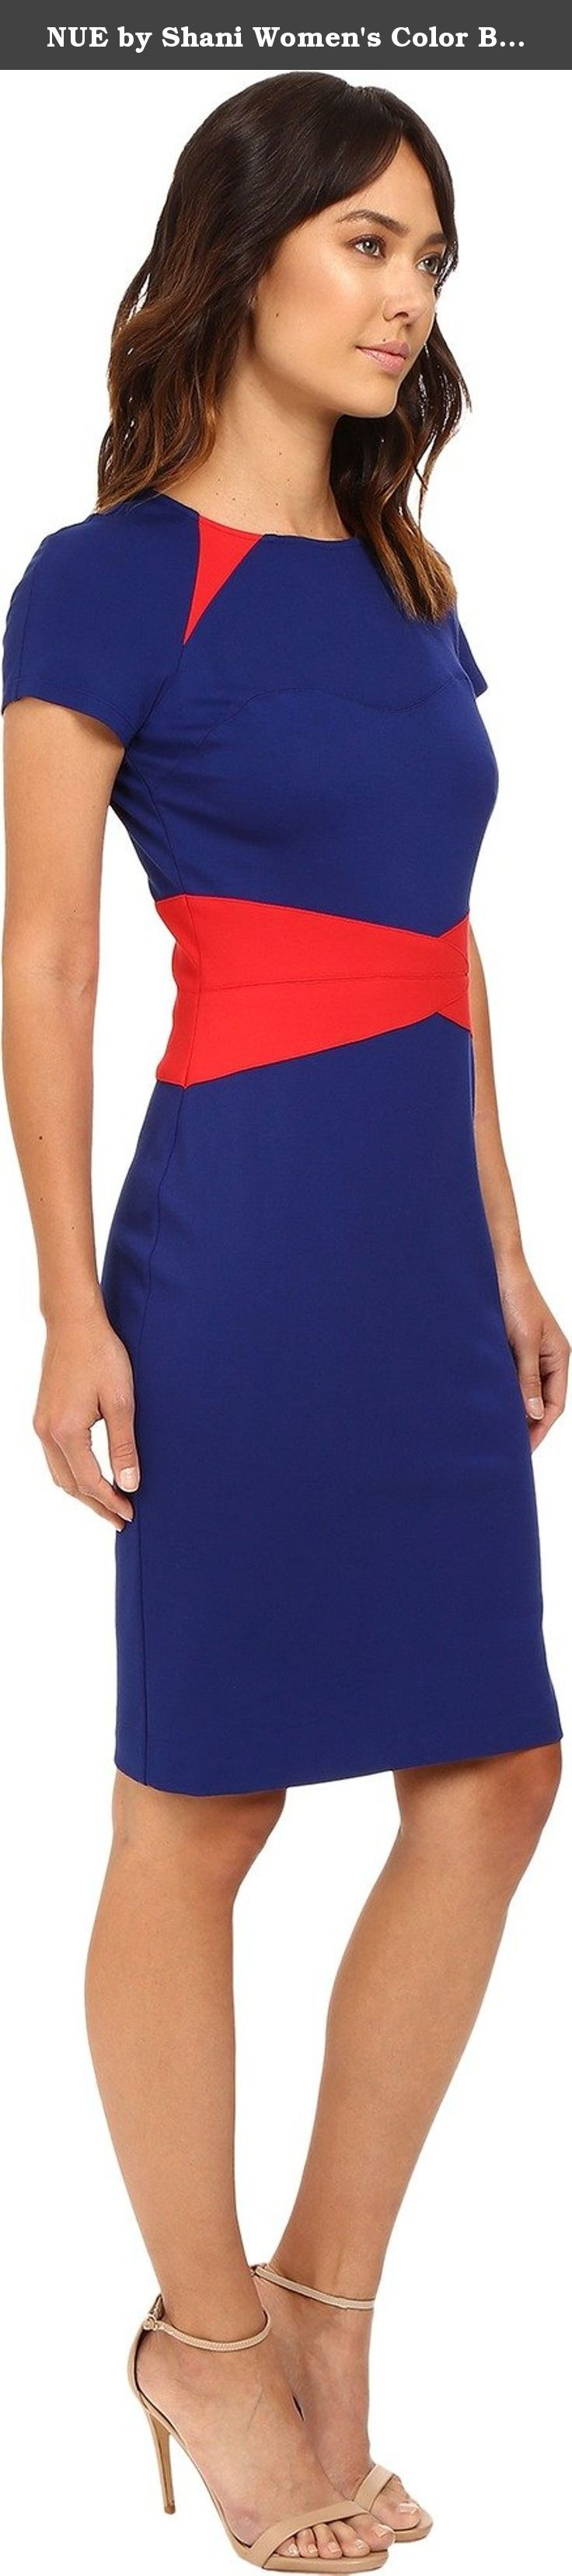 NUE by Shani Women's Color Blocking Knit Dress with Insets At Neckline and Waist Red/Indigo Dress. Curvaceous color-blocking highlights the slimming silhouette of this stunning sheath dress. Lined with built-in shape wear for sleek fit. Contrast insets featured at shoulders and waist for an elegant finish. Rounded neckline. Short raglan sleeves. Straight hemline. Back hook and zipper closure. 60% rayon, 33% nylon, 7% spandex;A Lining: 94% polyester, 6% spandex;B Lining: 85% polyester,15%...